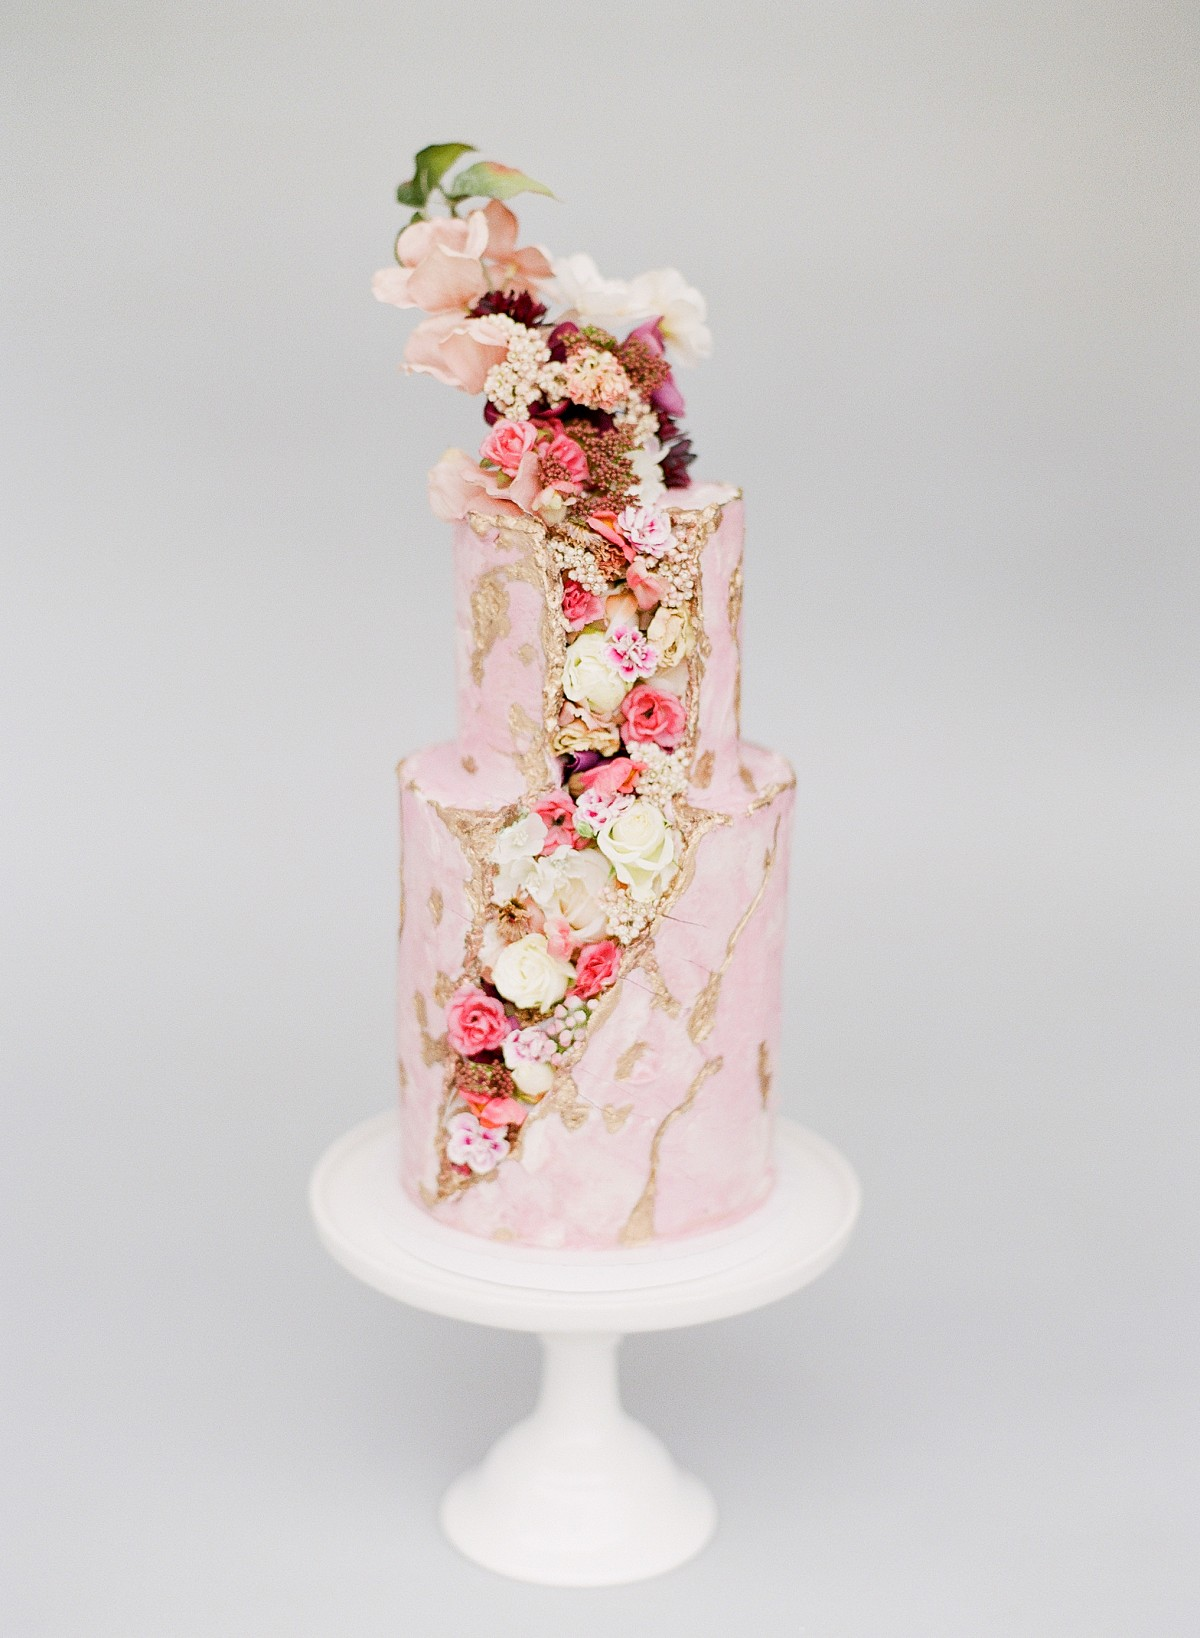 7 Wedding Cakes That Are (Almost) Too Pretty To Eat